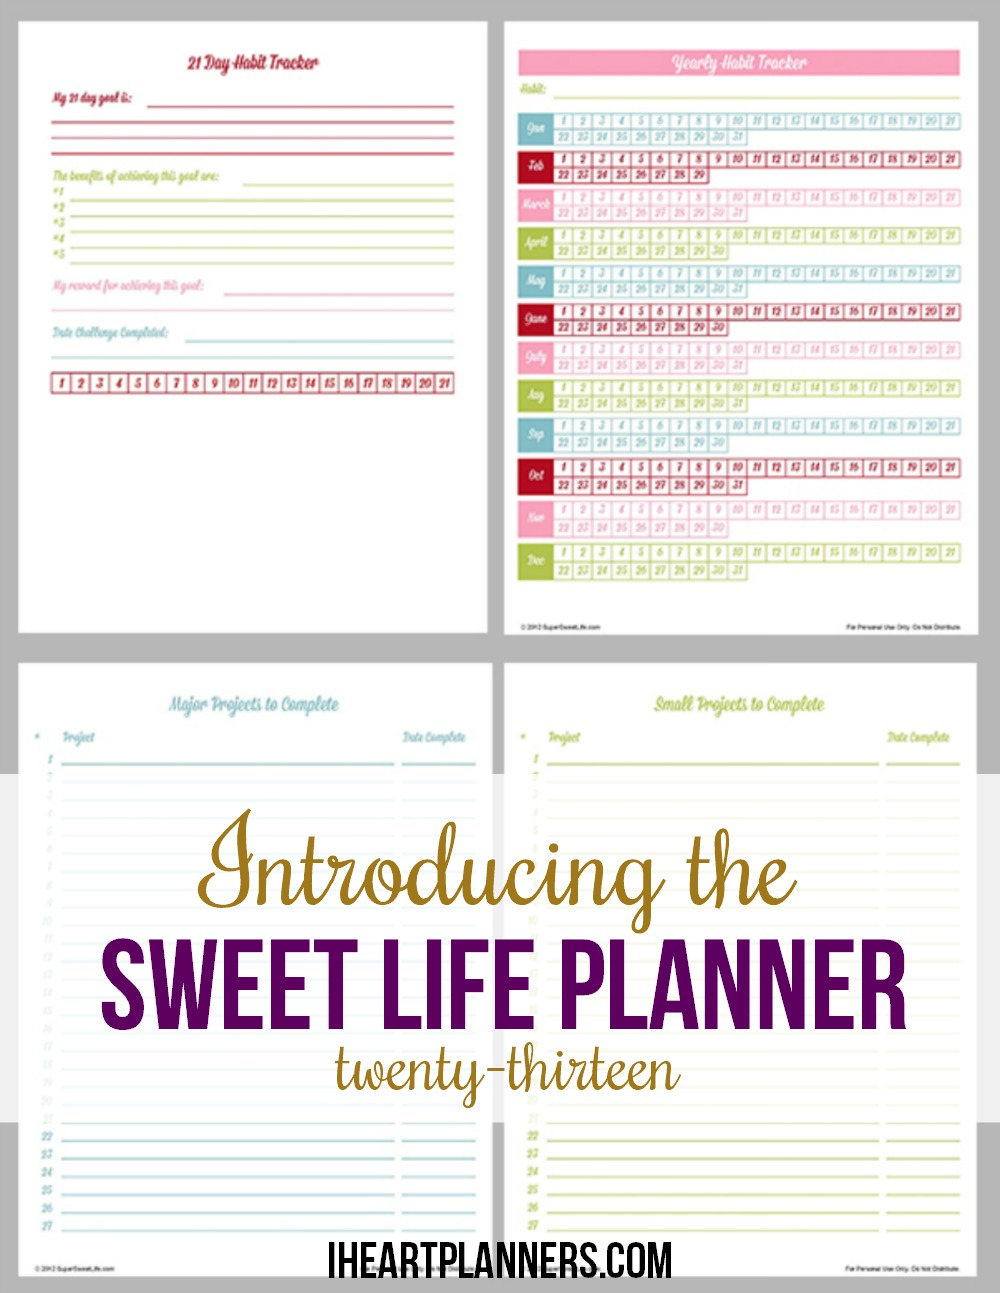 Introducing the Sweet Life Planner 2013 - a great way to stay organized! Use this planner and calendar to organize your home, family, business, and anything else that overwhelms you!